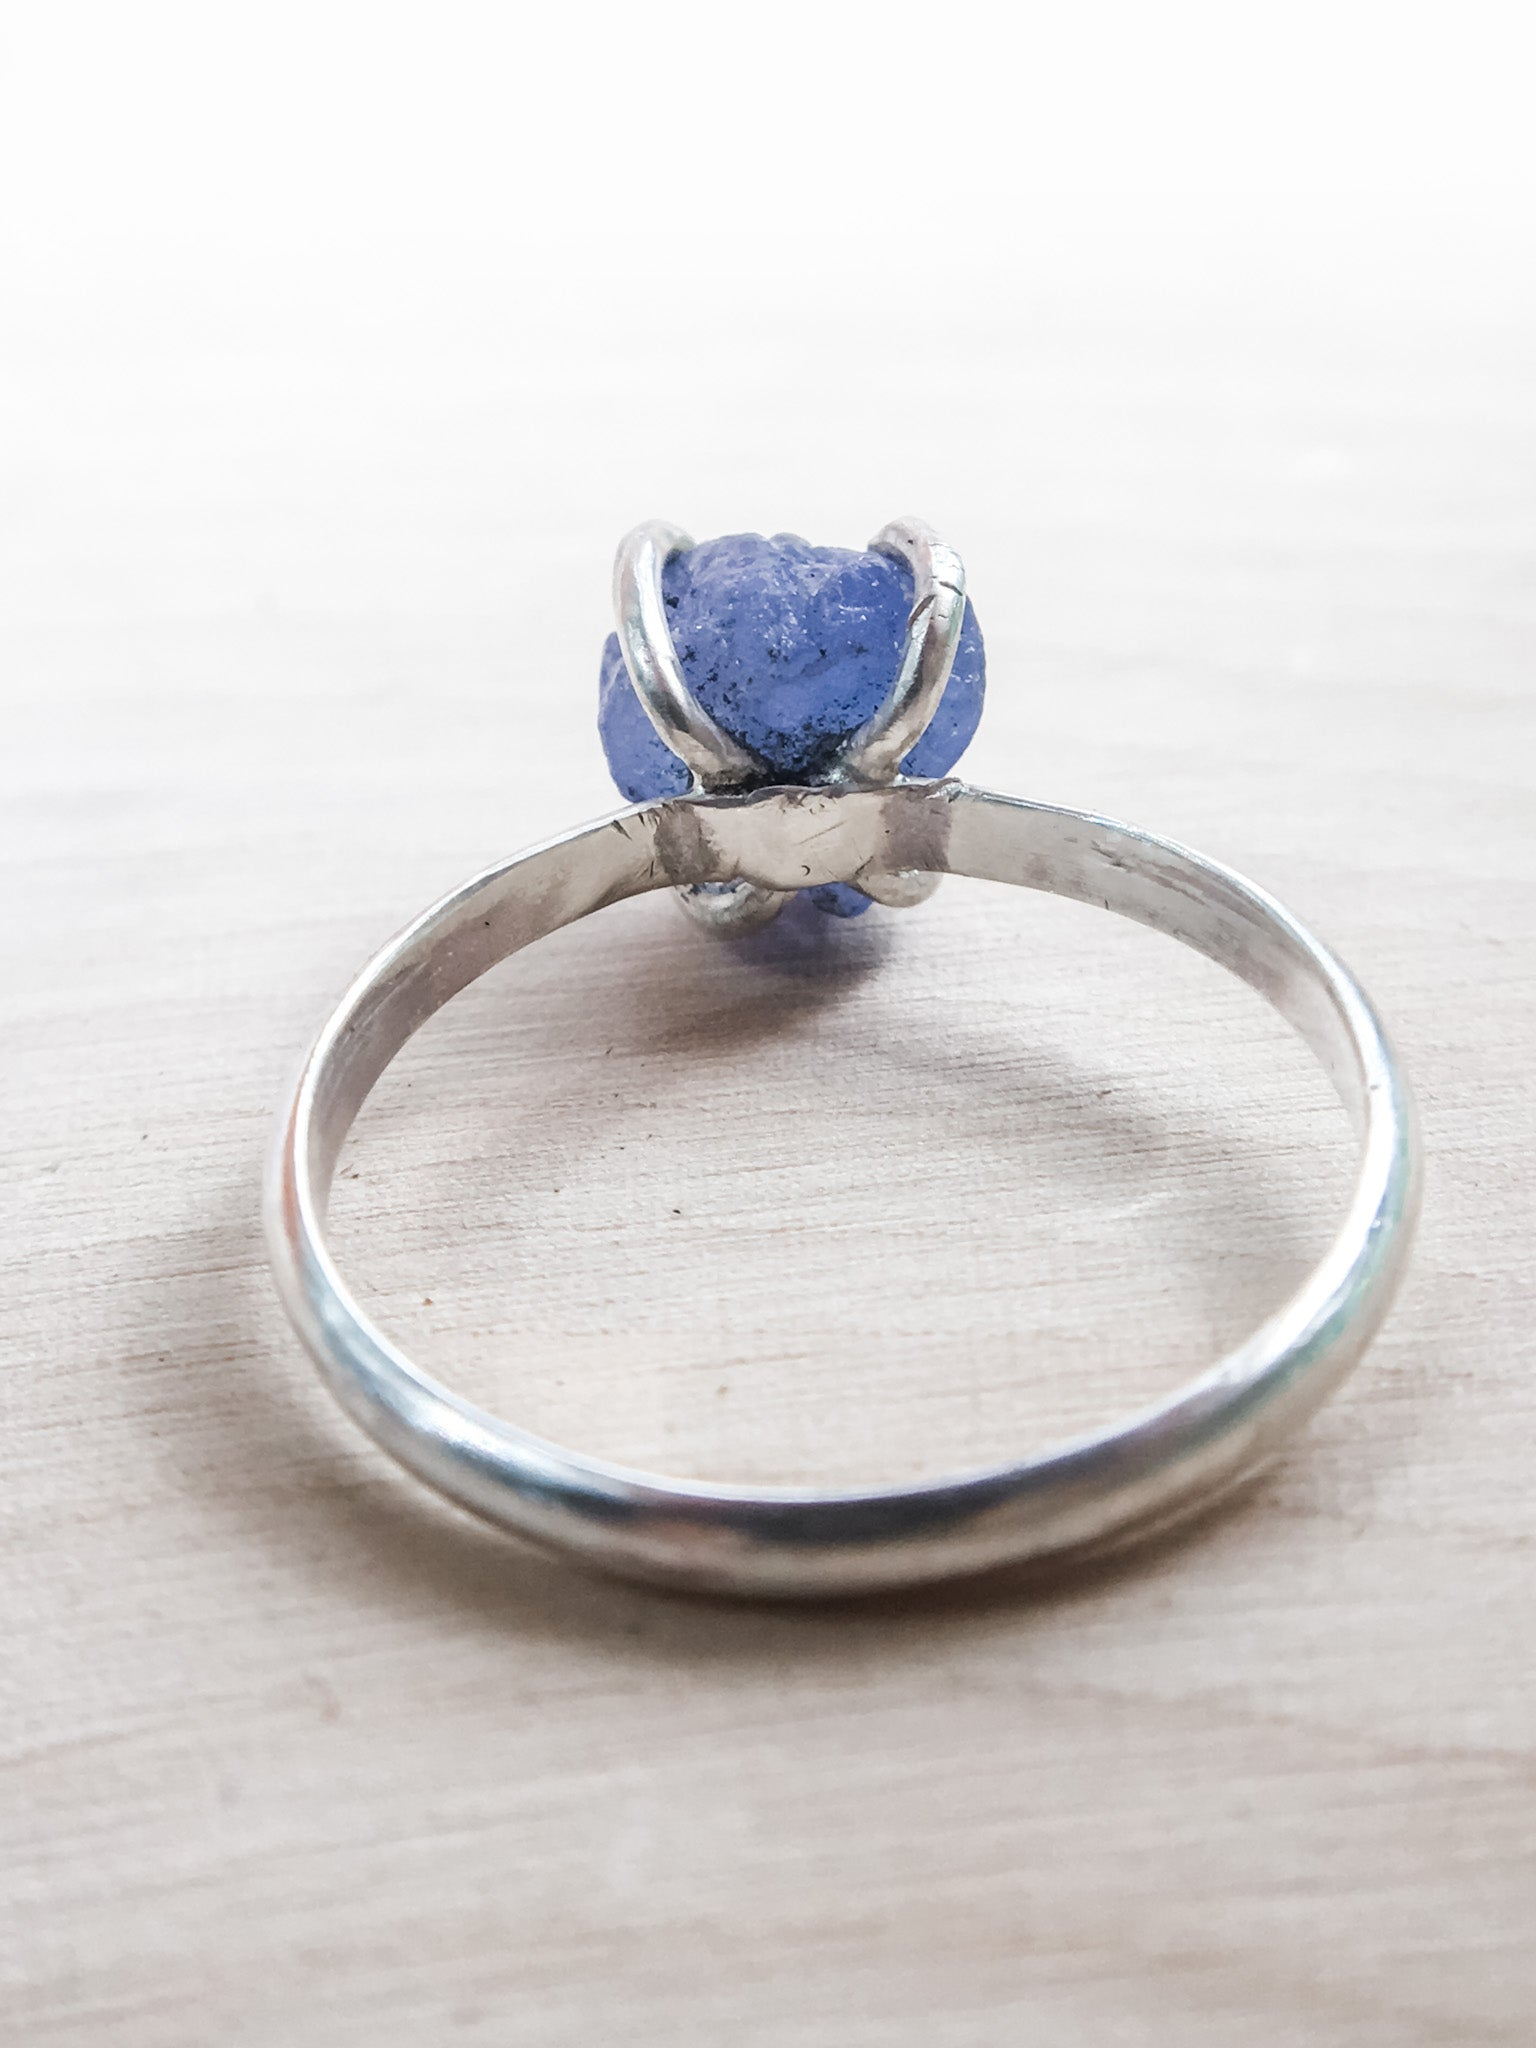 Chip of Mermaid Scale Raw Tanzanite Ring - Silver Lily Studio